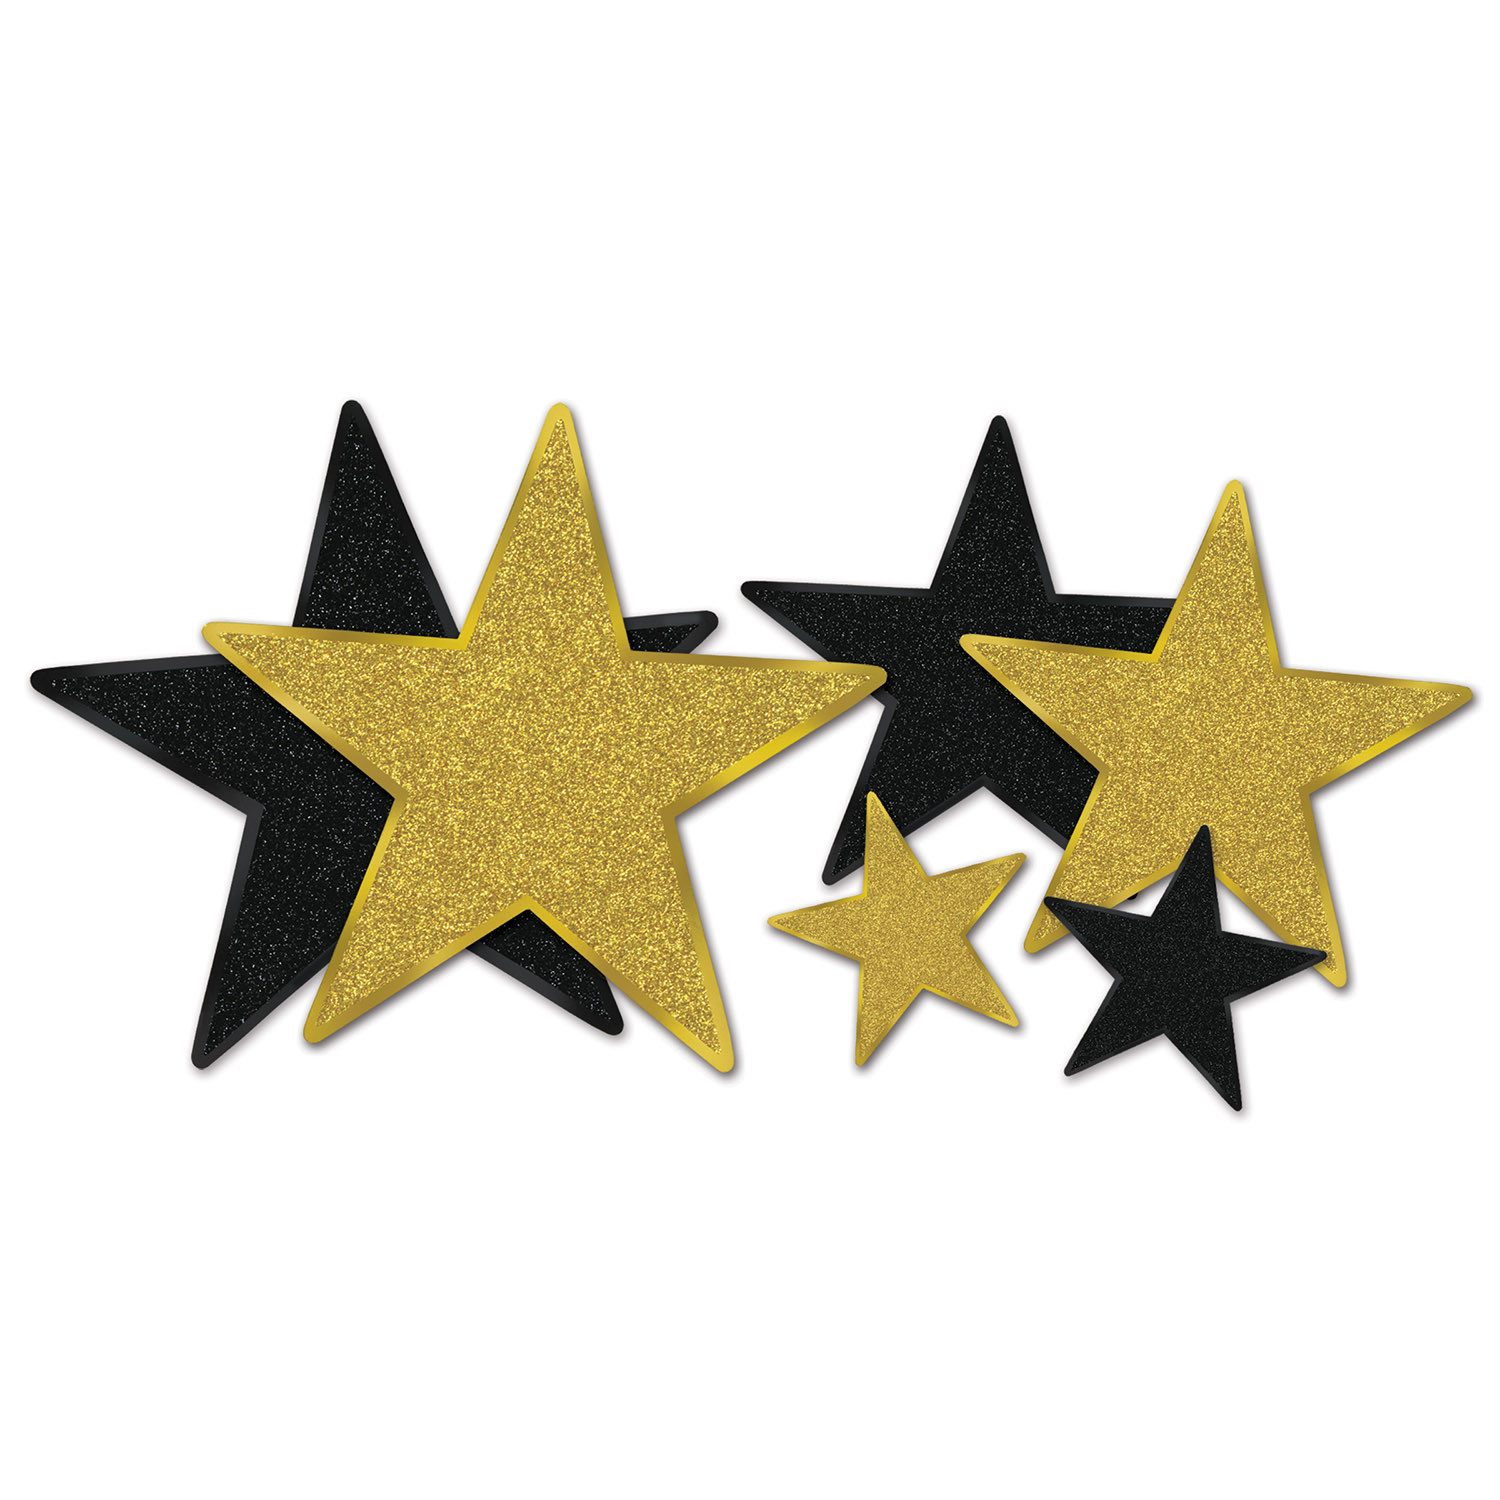 Glittered Star Cutouts (Pack of 72) Glittered stars, Star, Star Cutouts, Foil stars, Awards Night, Cheap, New Years Eve, Black and Gold, Wholesale party supplies, Inexpensive decor, Party goods, Budget, NYE